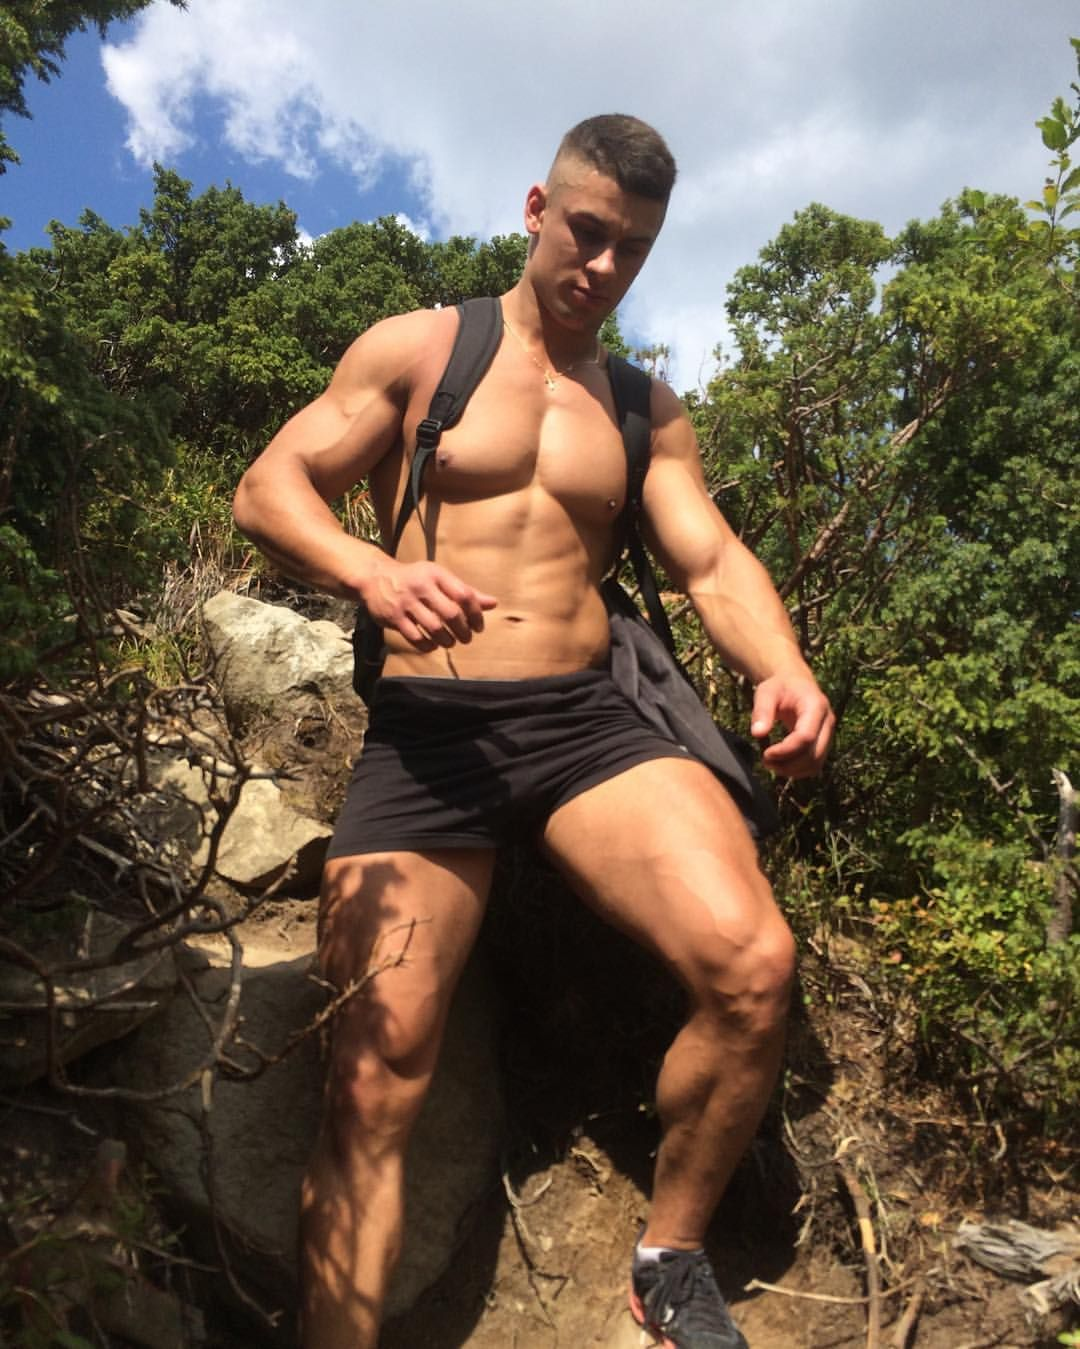 You Can Date On Link Below Man Brutal Strong Power Beautiful